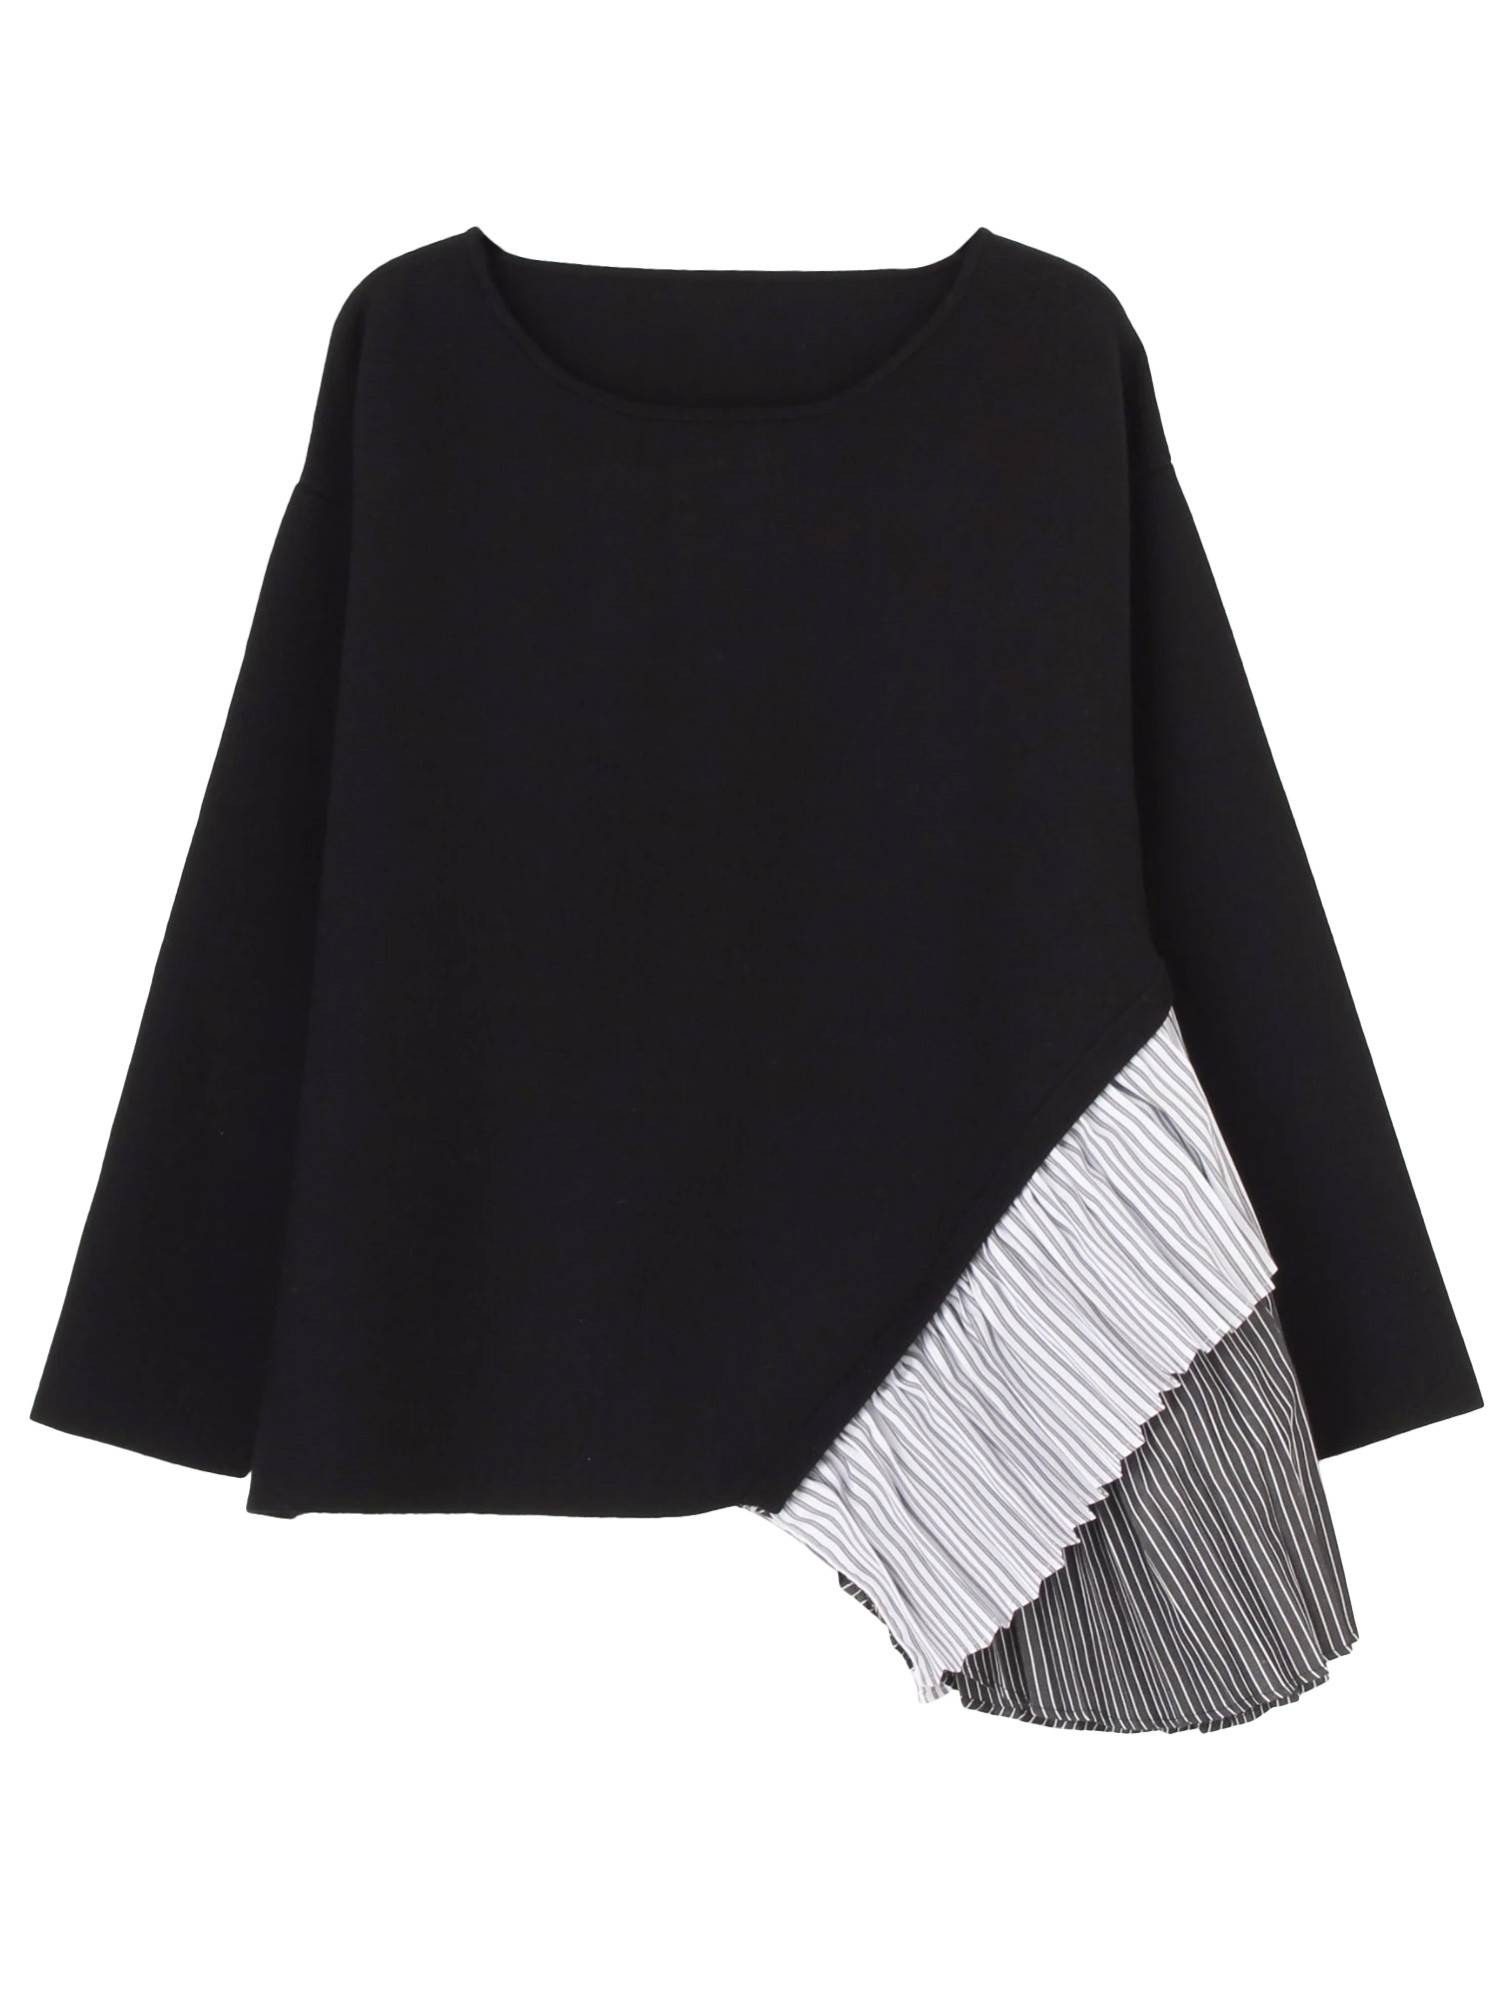 ASYMMETRIC W STRIPES KT